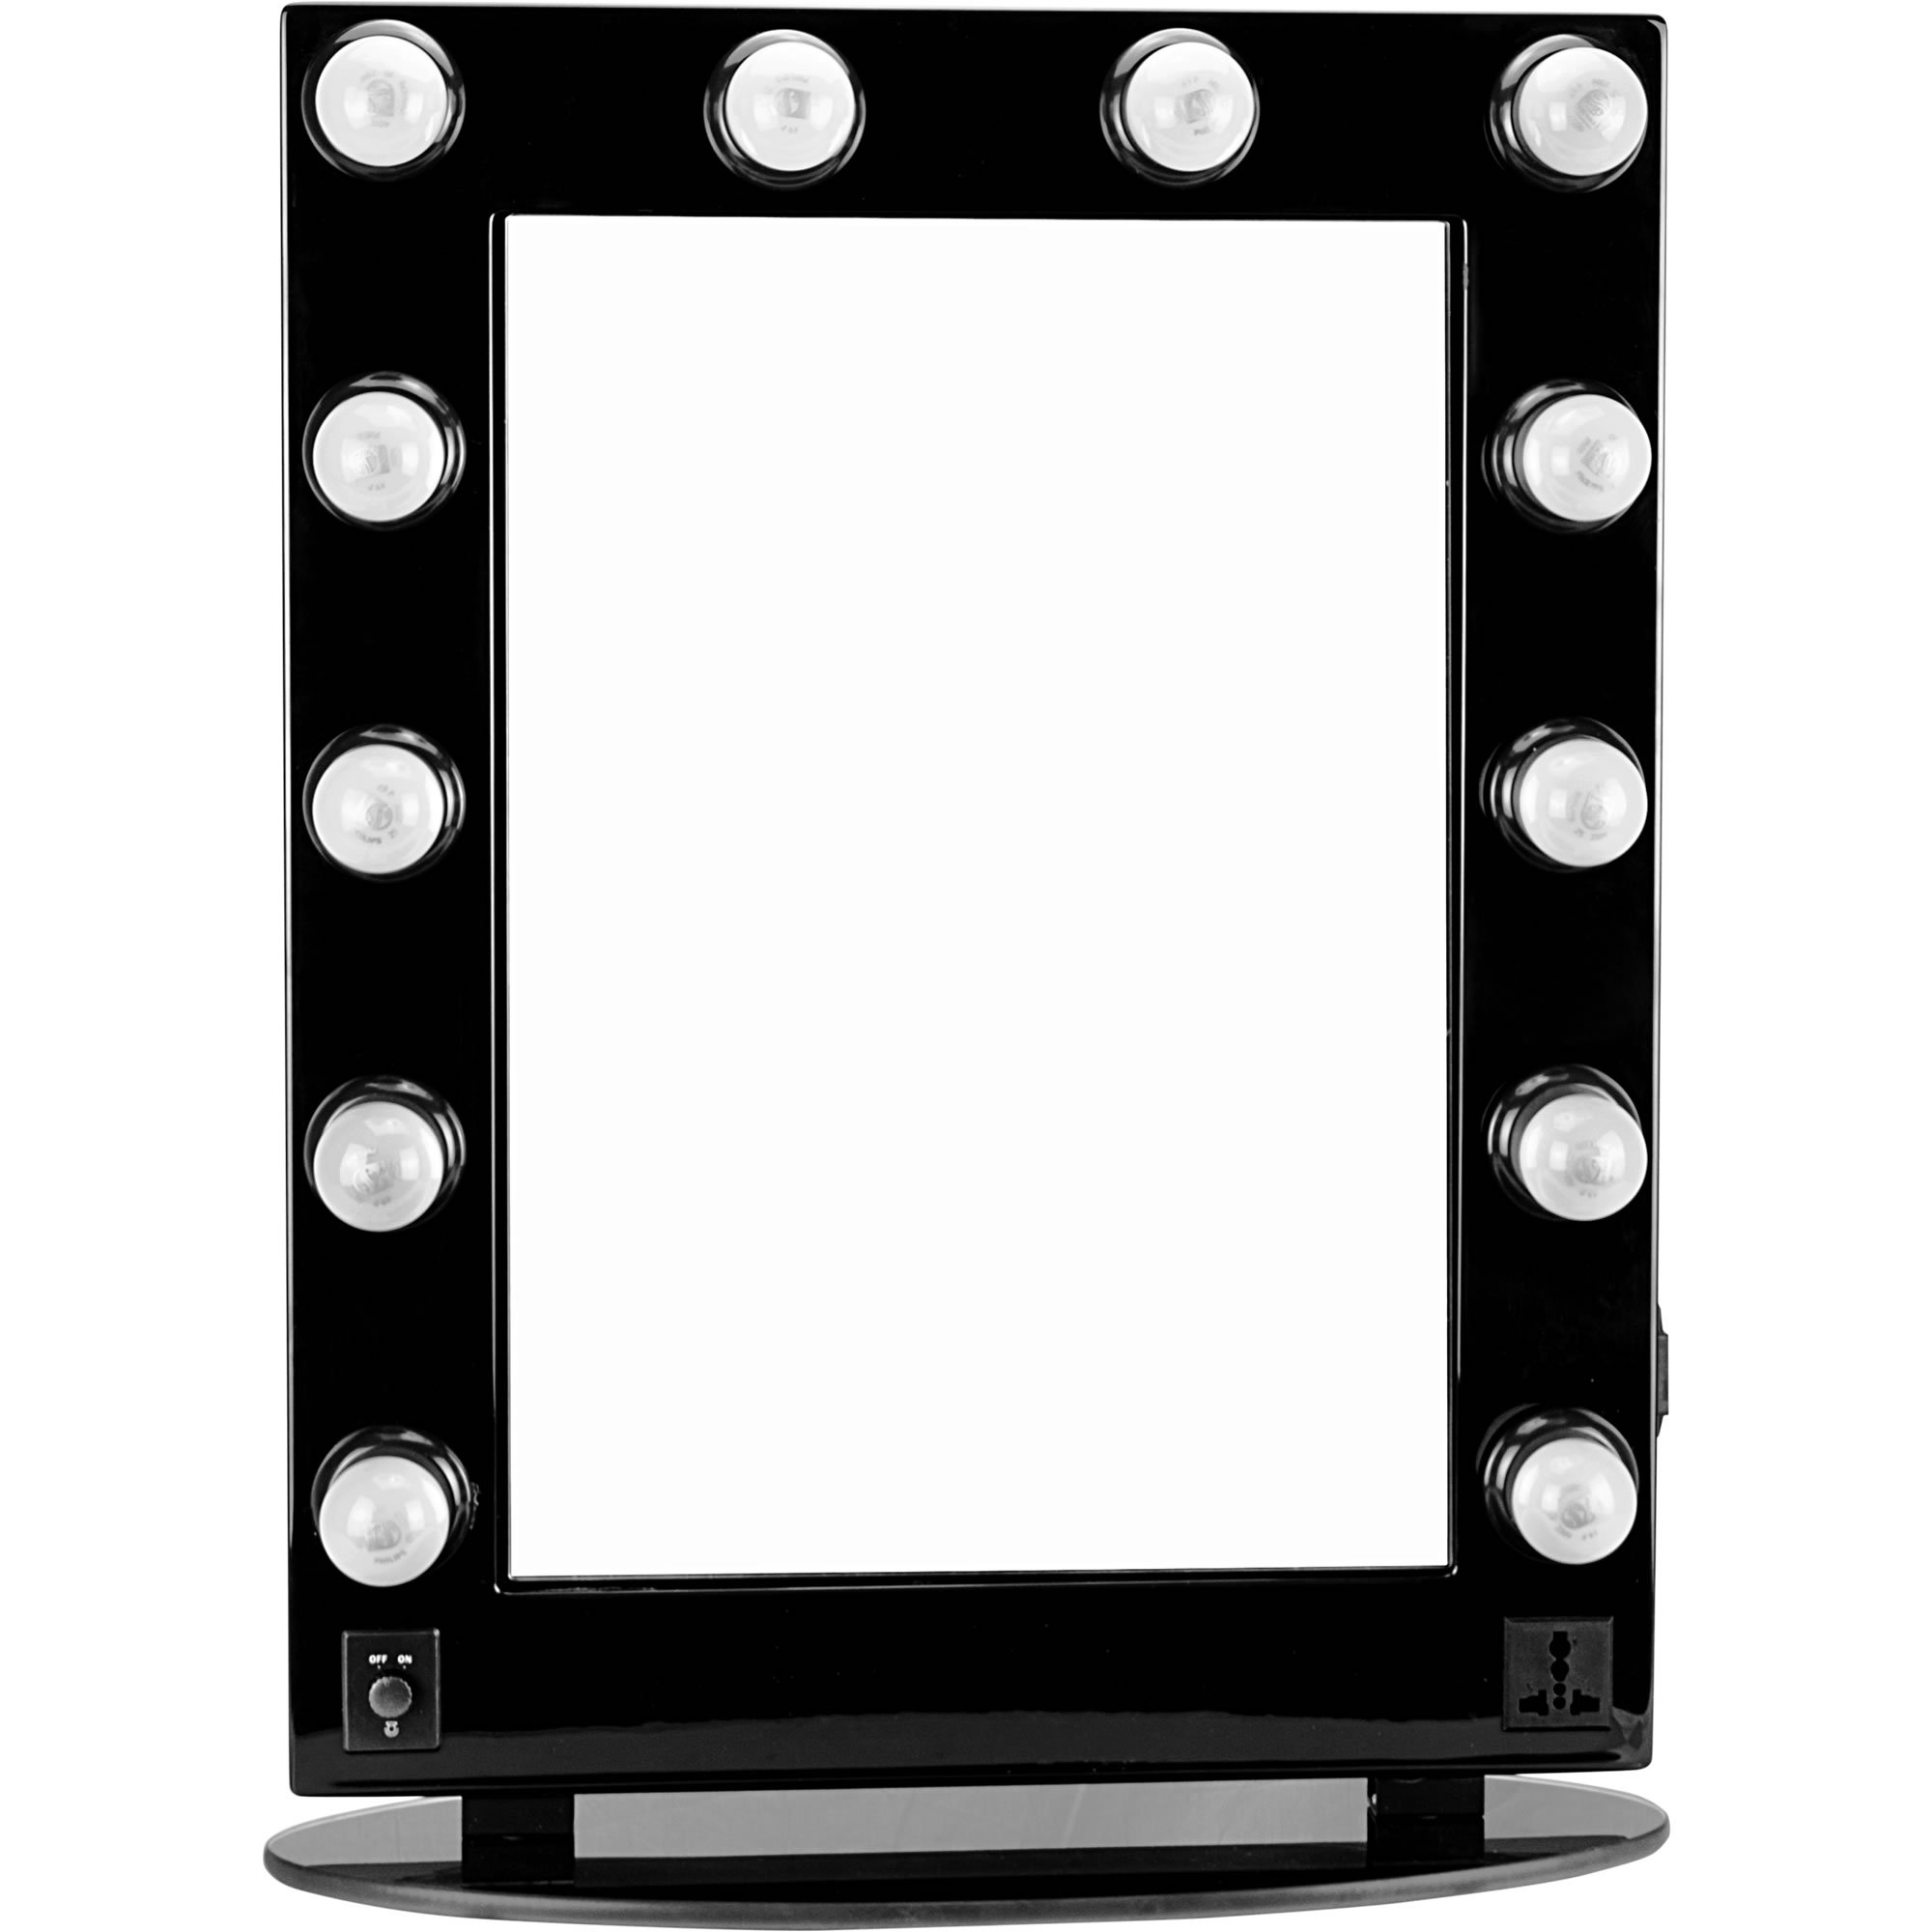 Hiker 12 Dimmer Light Piece Body and Glass Base Hollywood Vanity Makeup Wall Mount Mirror Table Top, Black